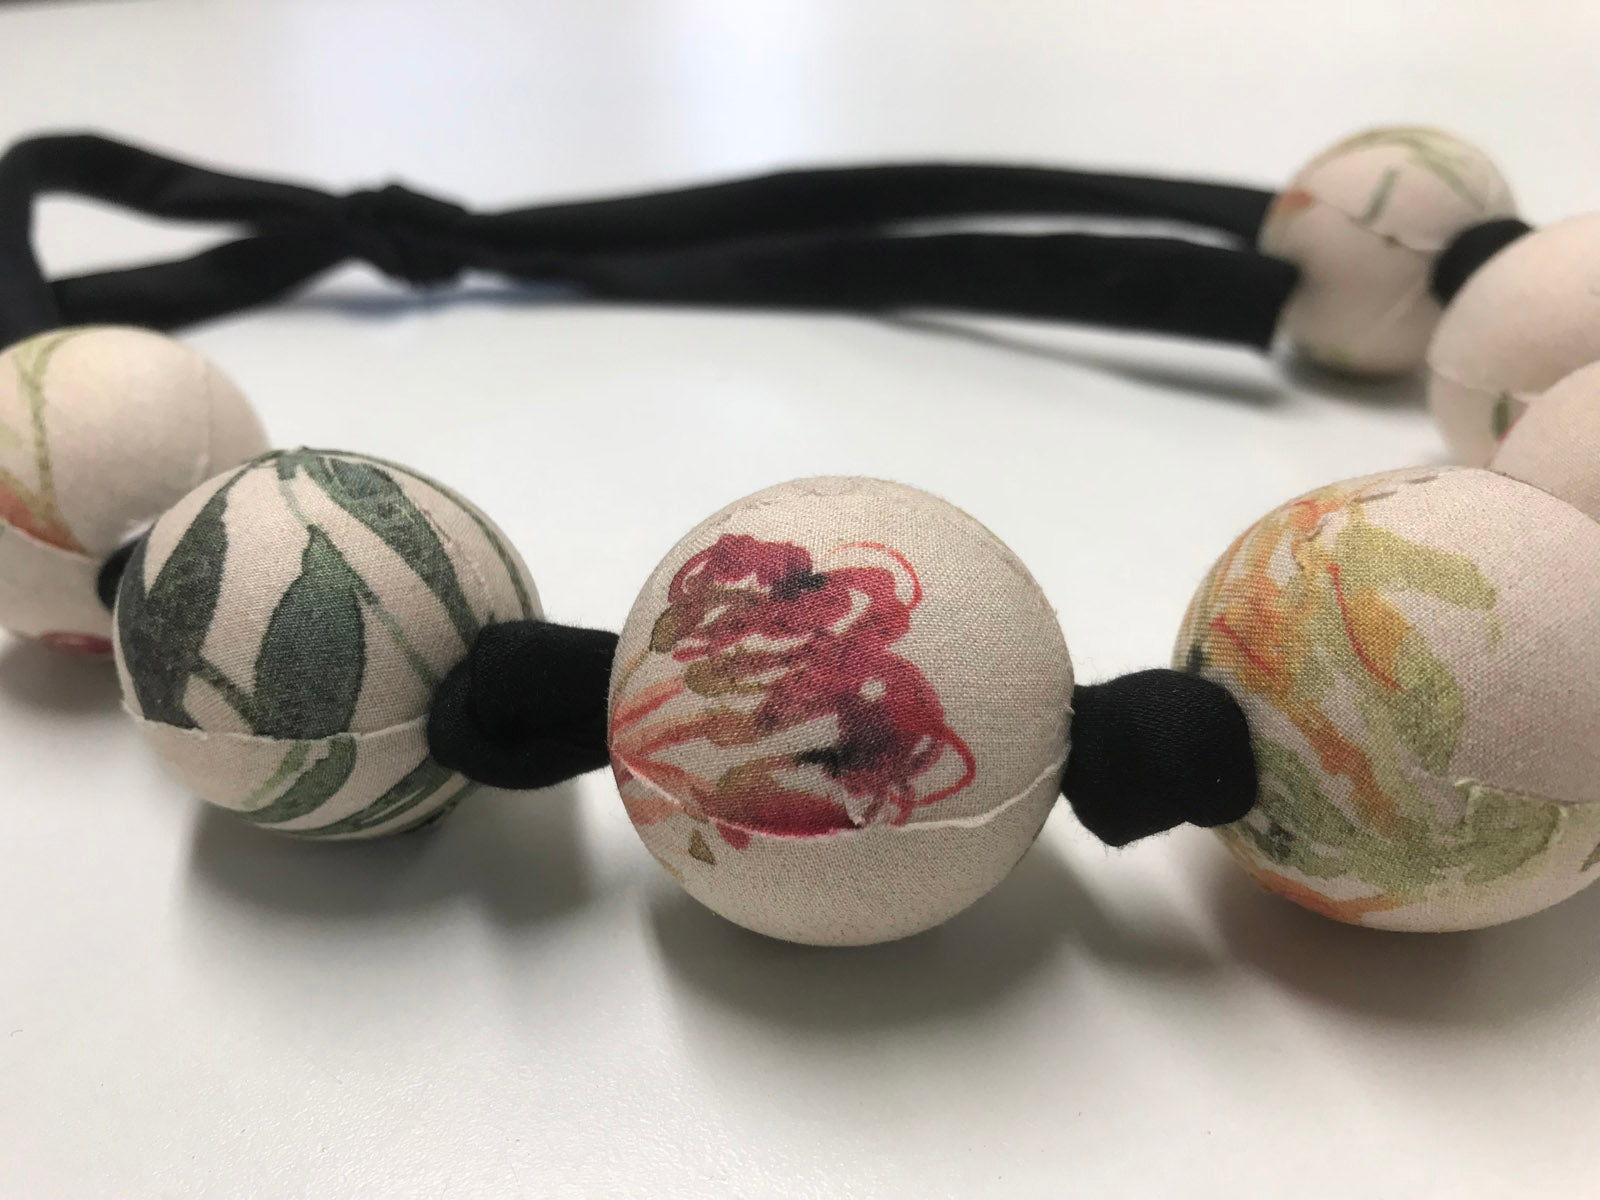 Japanese handmade natural grevillea fabric orbs